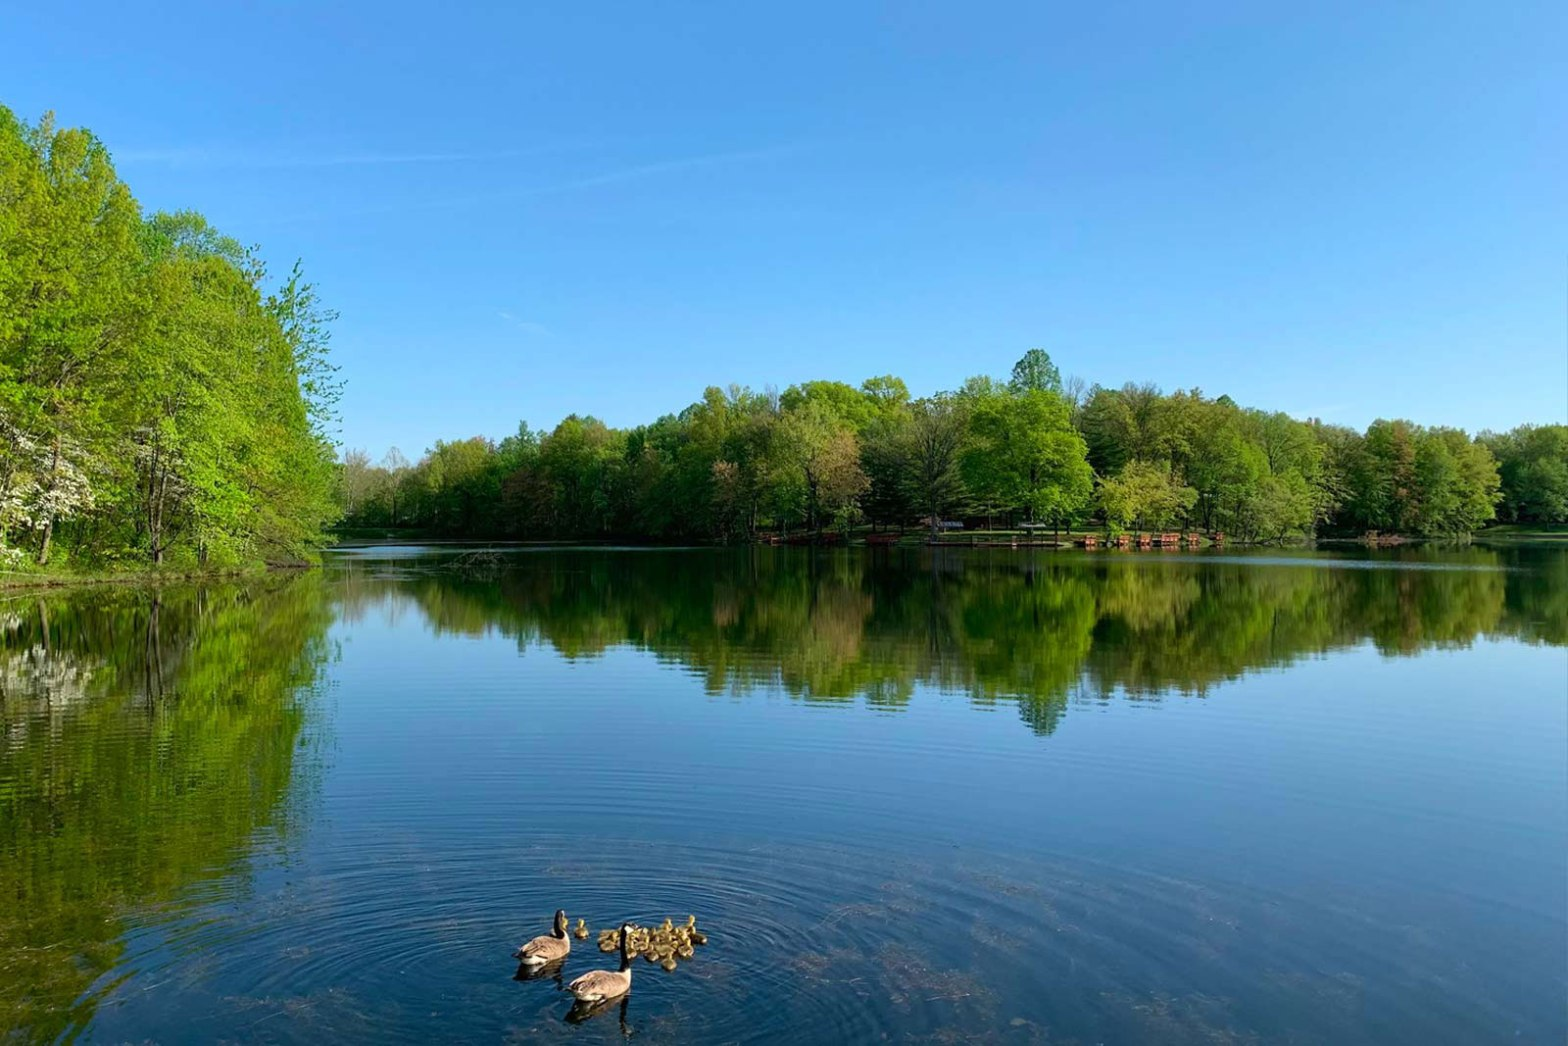 Blue lake with a family of swimming ducks surrounded by green trees